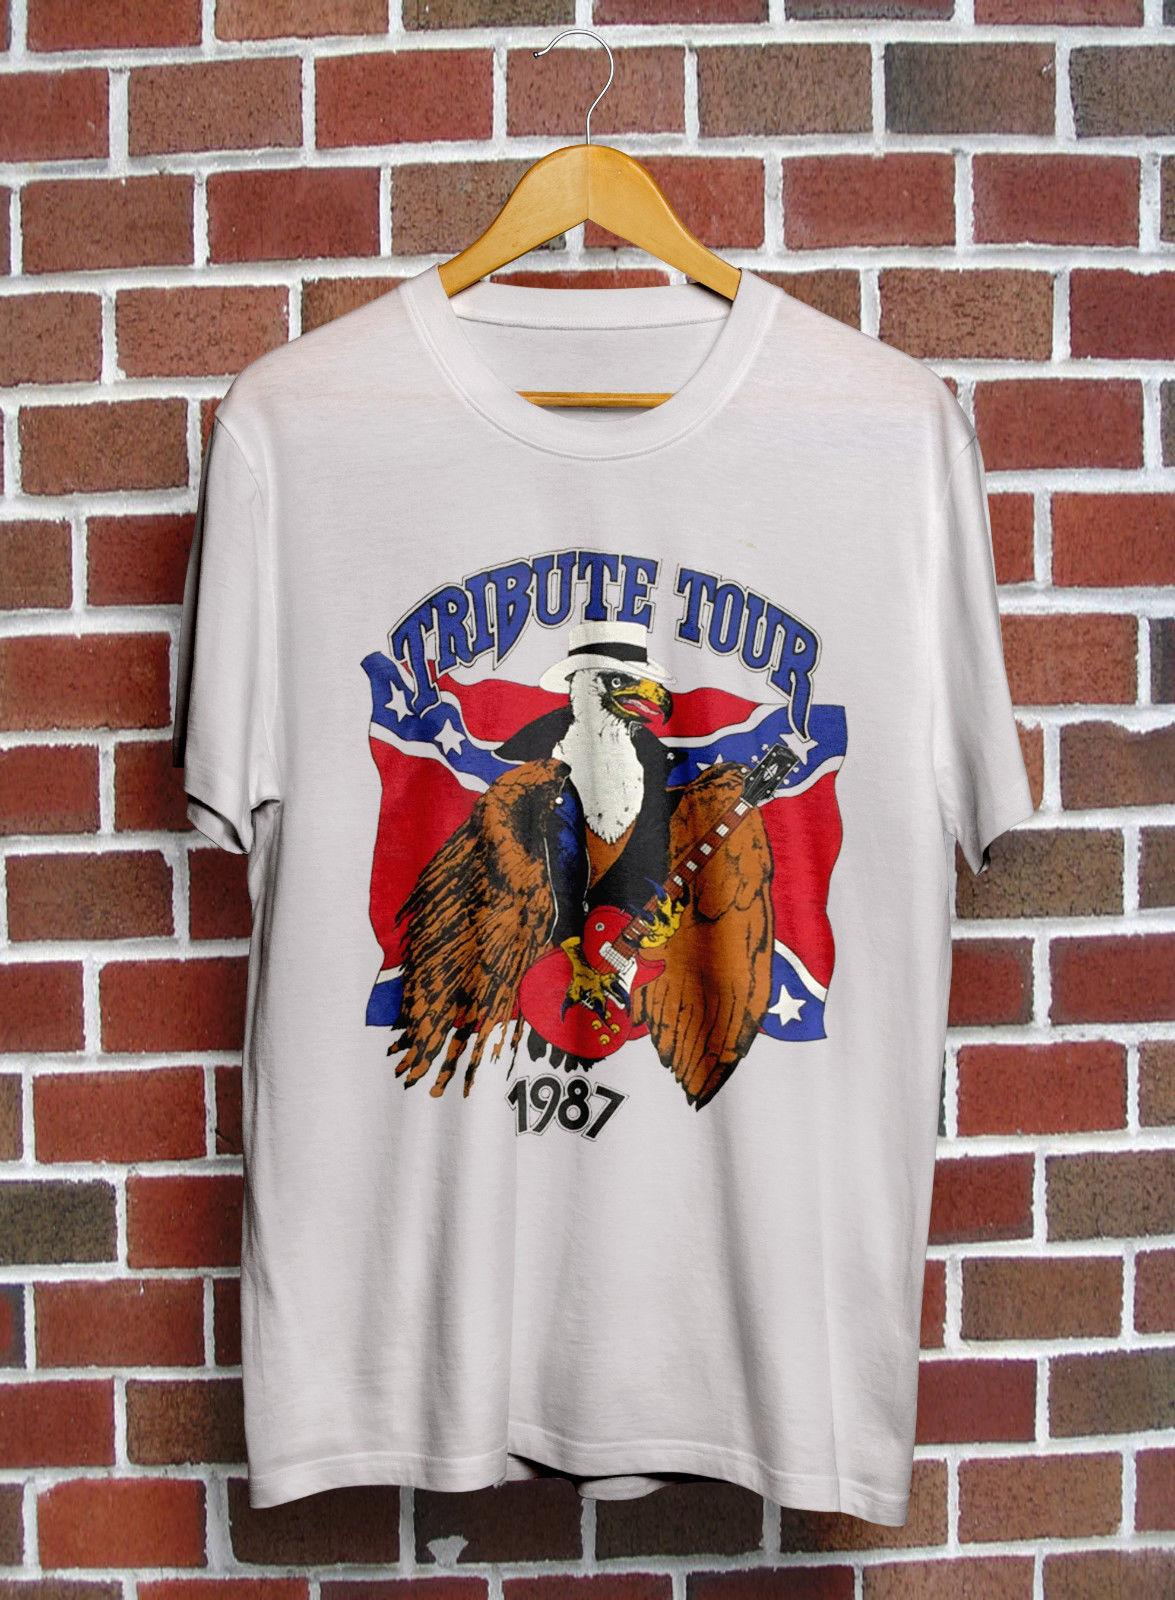 Vintage Rare!! Lynyrd Skynyrd Concert T Shirt Tribute Tour 1987 TOP !!  summer Hot Sale Men T-Shirt Top New Tee Print